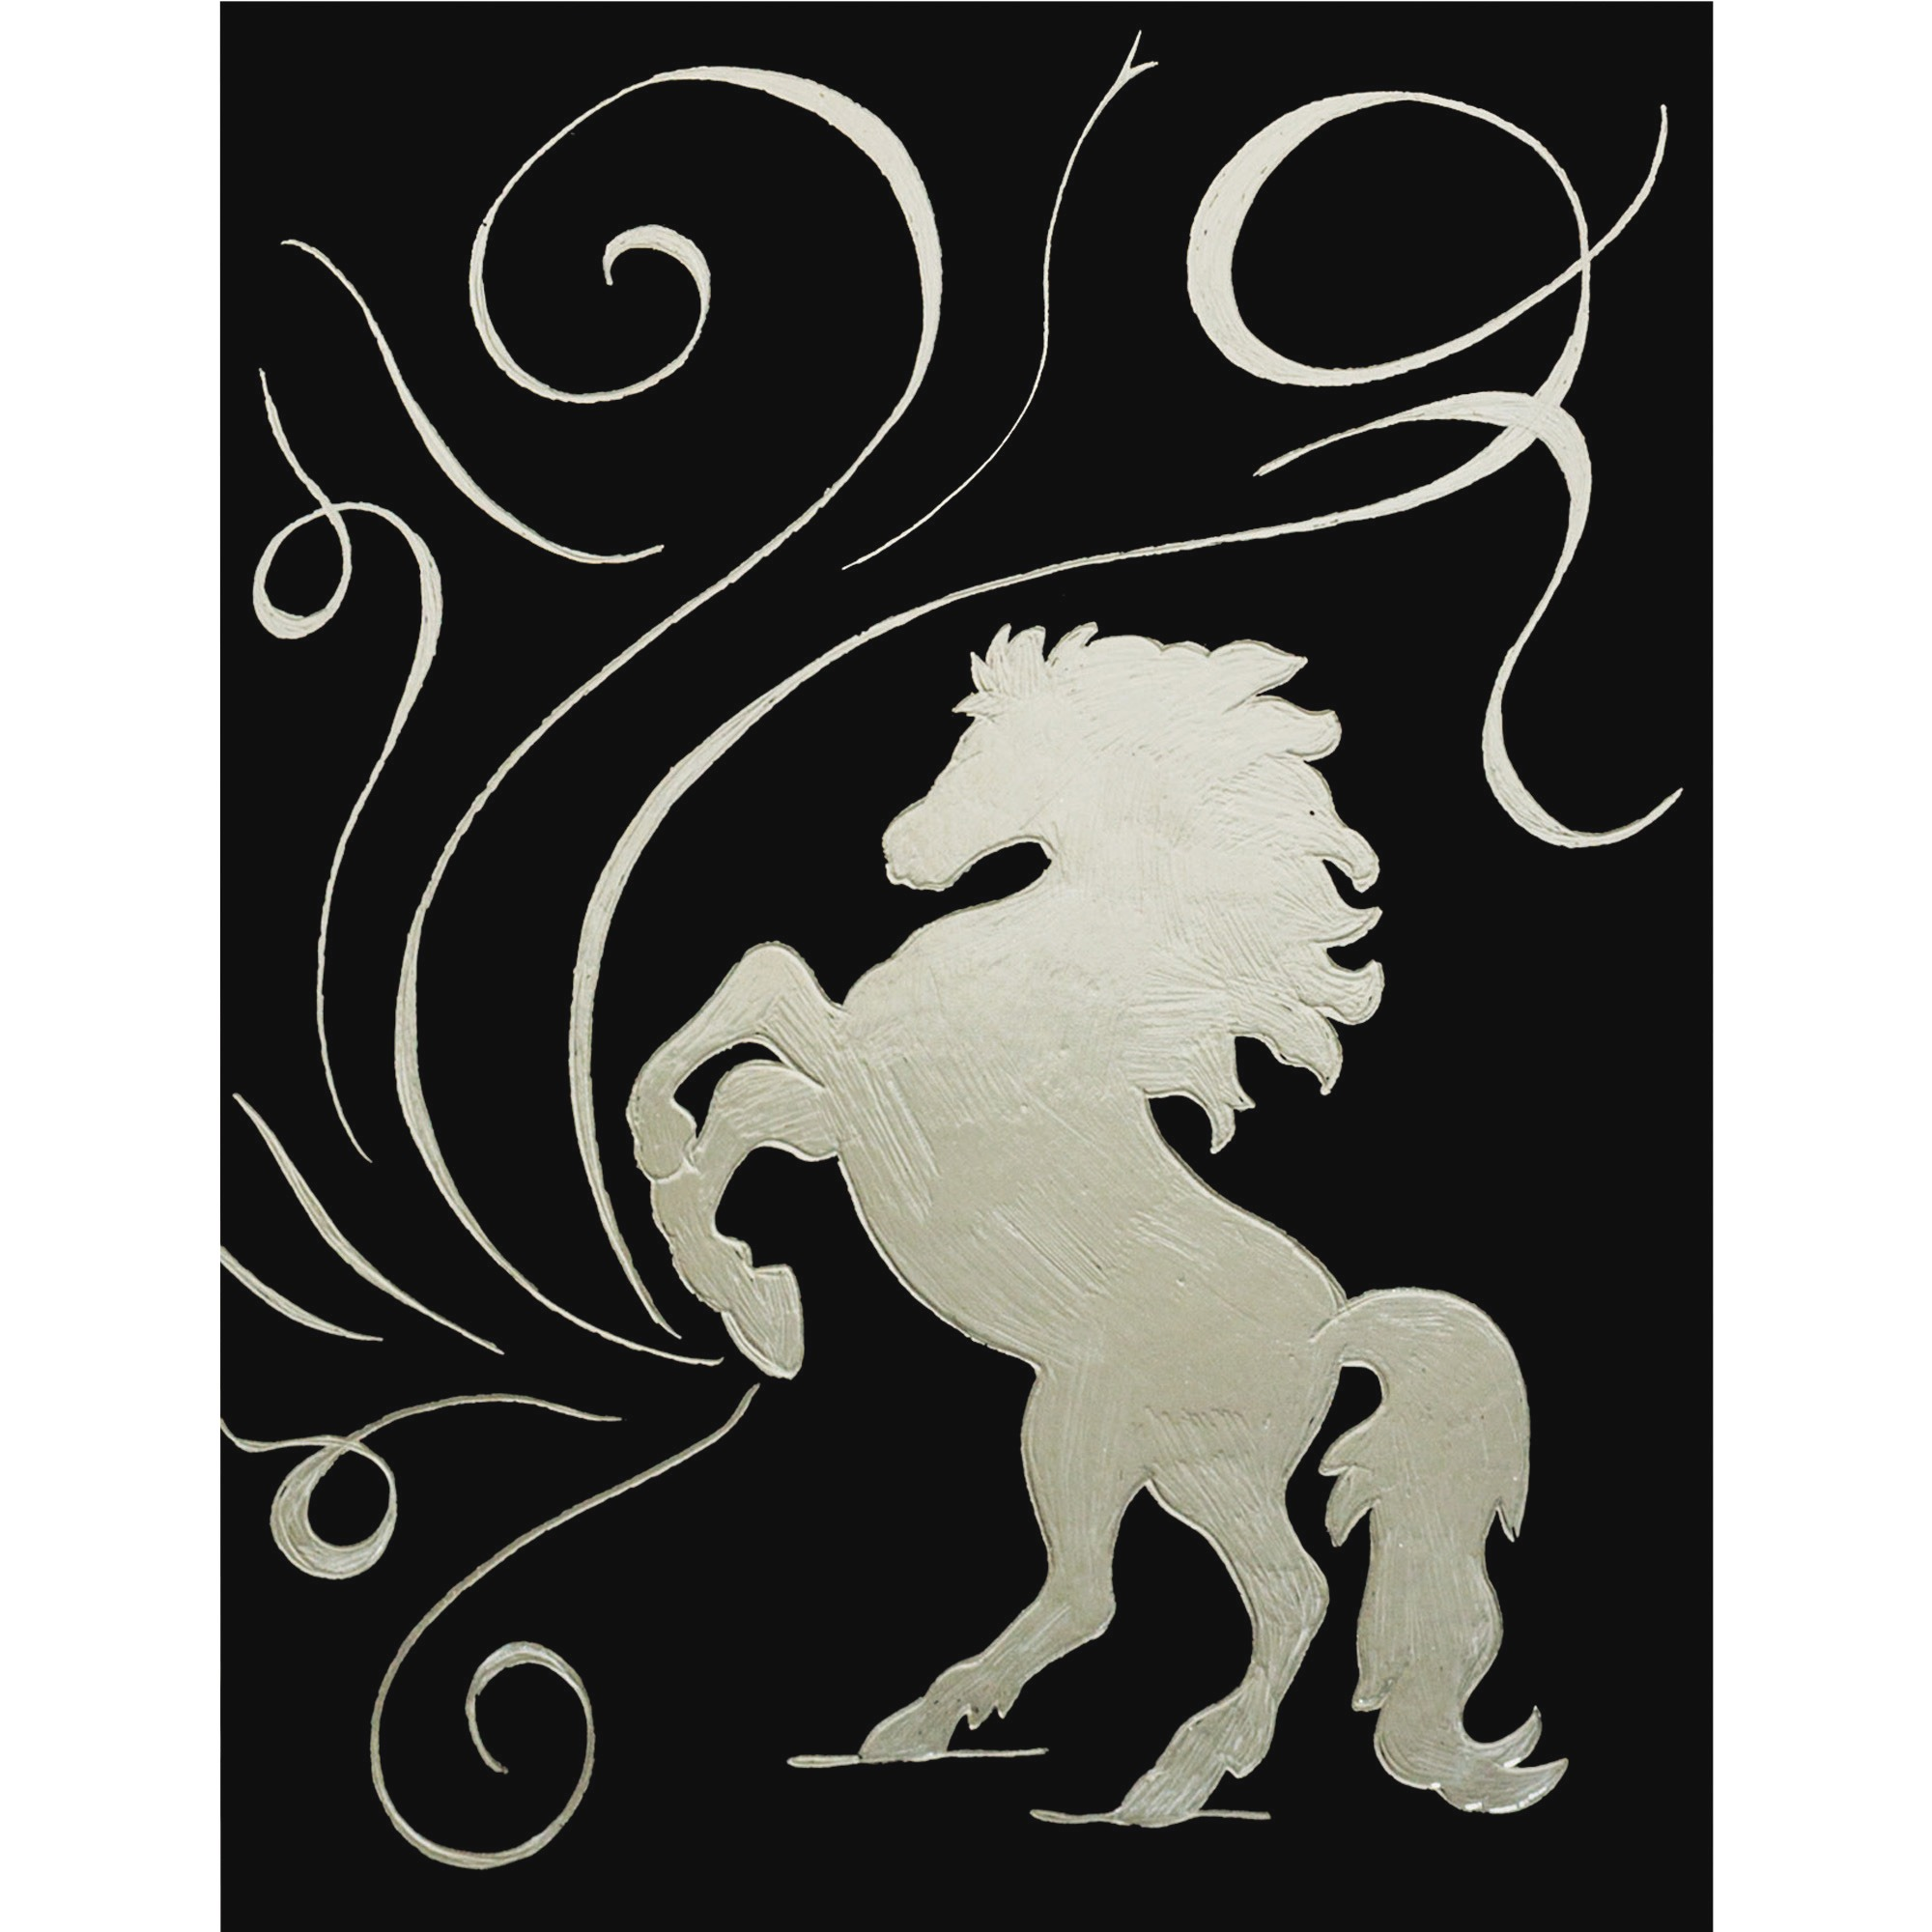 Creativity Street, CKC4626, Now You See It! Etch Silver Boards, 50 / Pack, Silver Metallic,Black